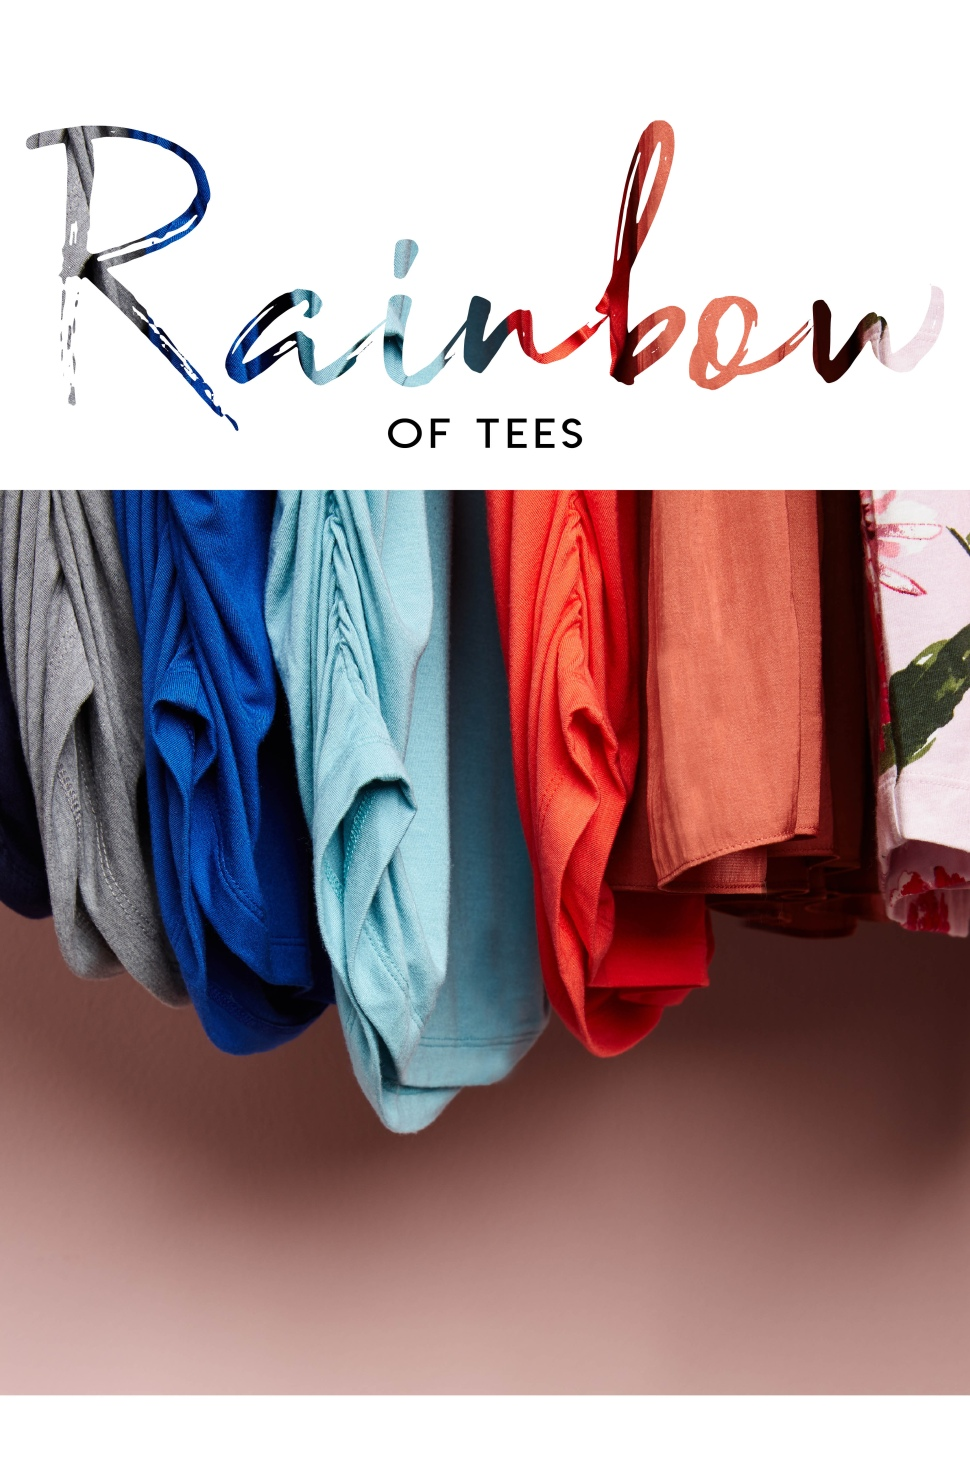 APIP BLOG RainbowOfTees 2018 Post